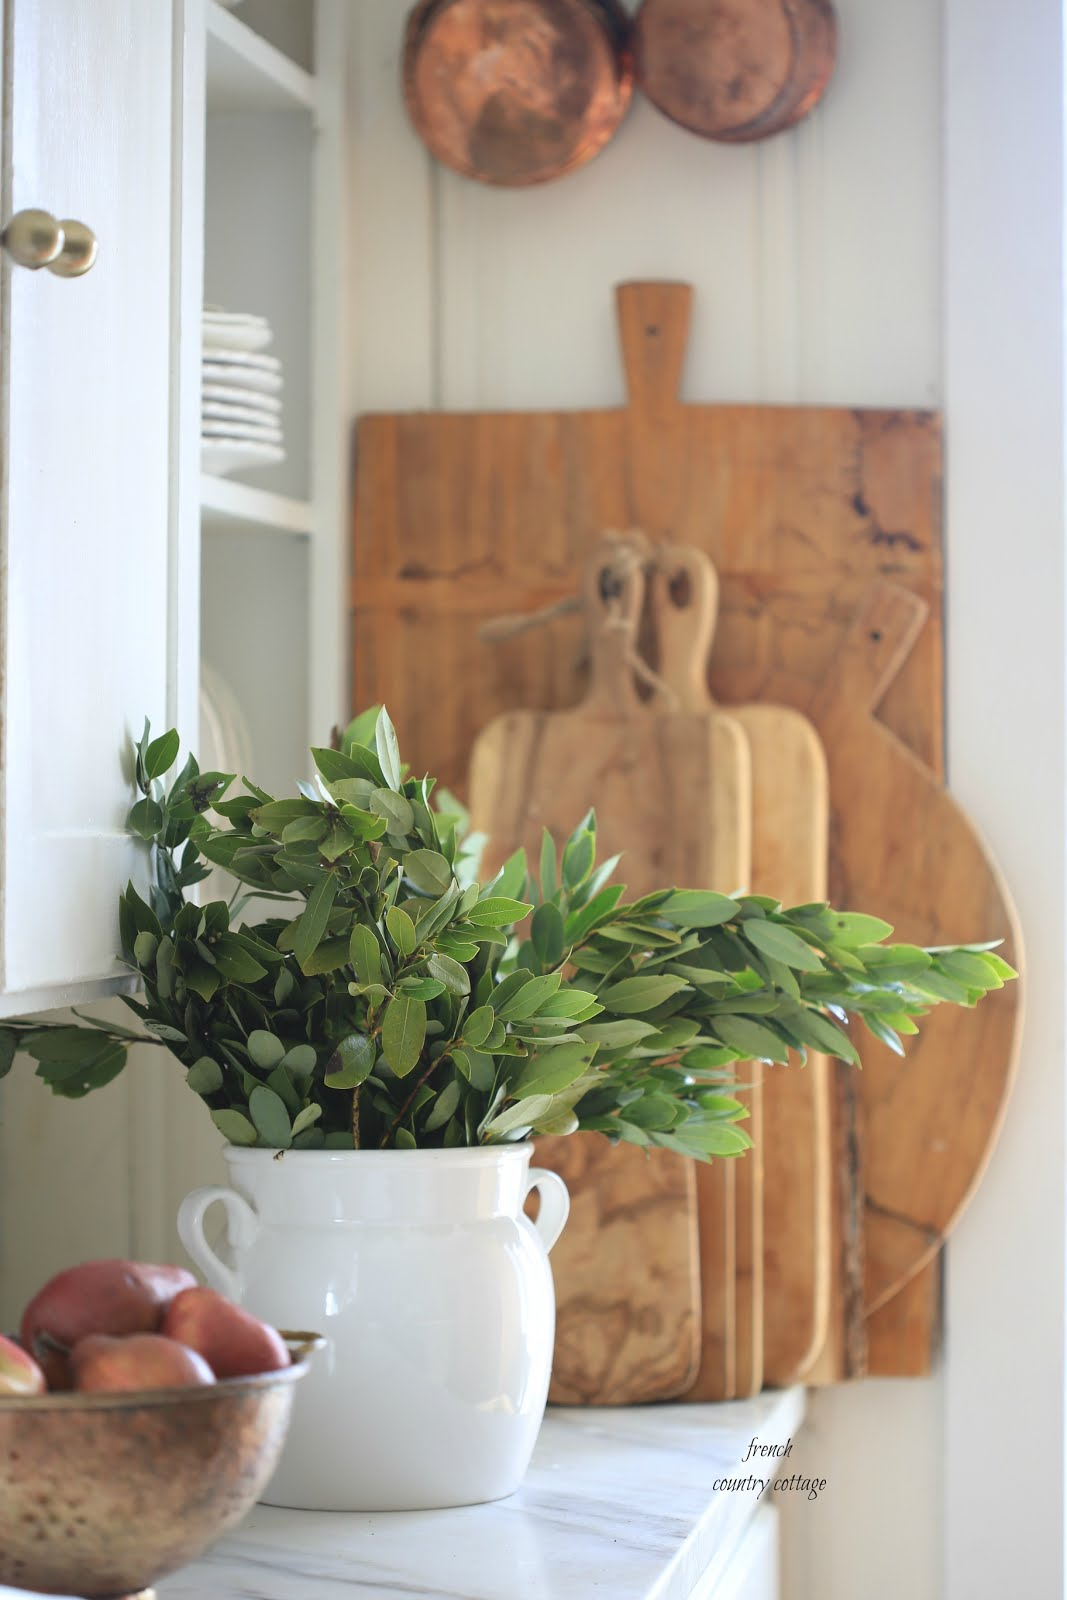 Courtney at french country cottage decorated the kitchen - Stack Of Breadboards In Kitchen